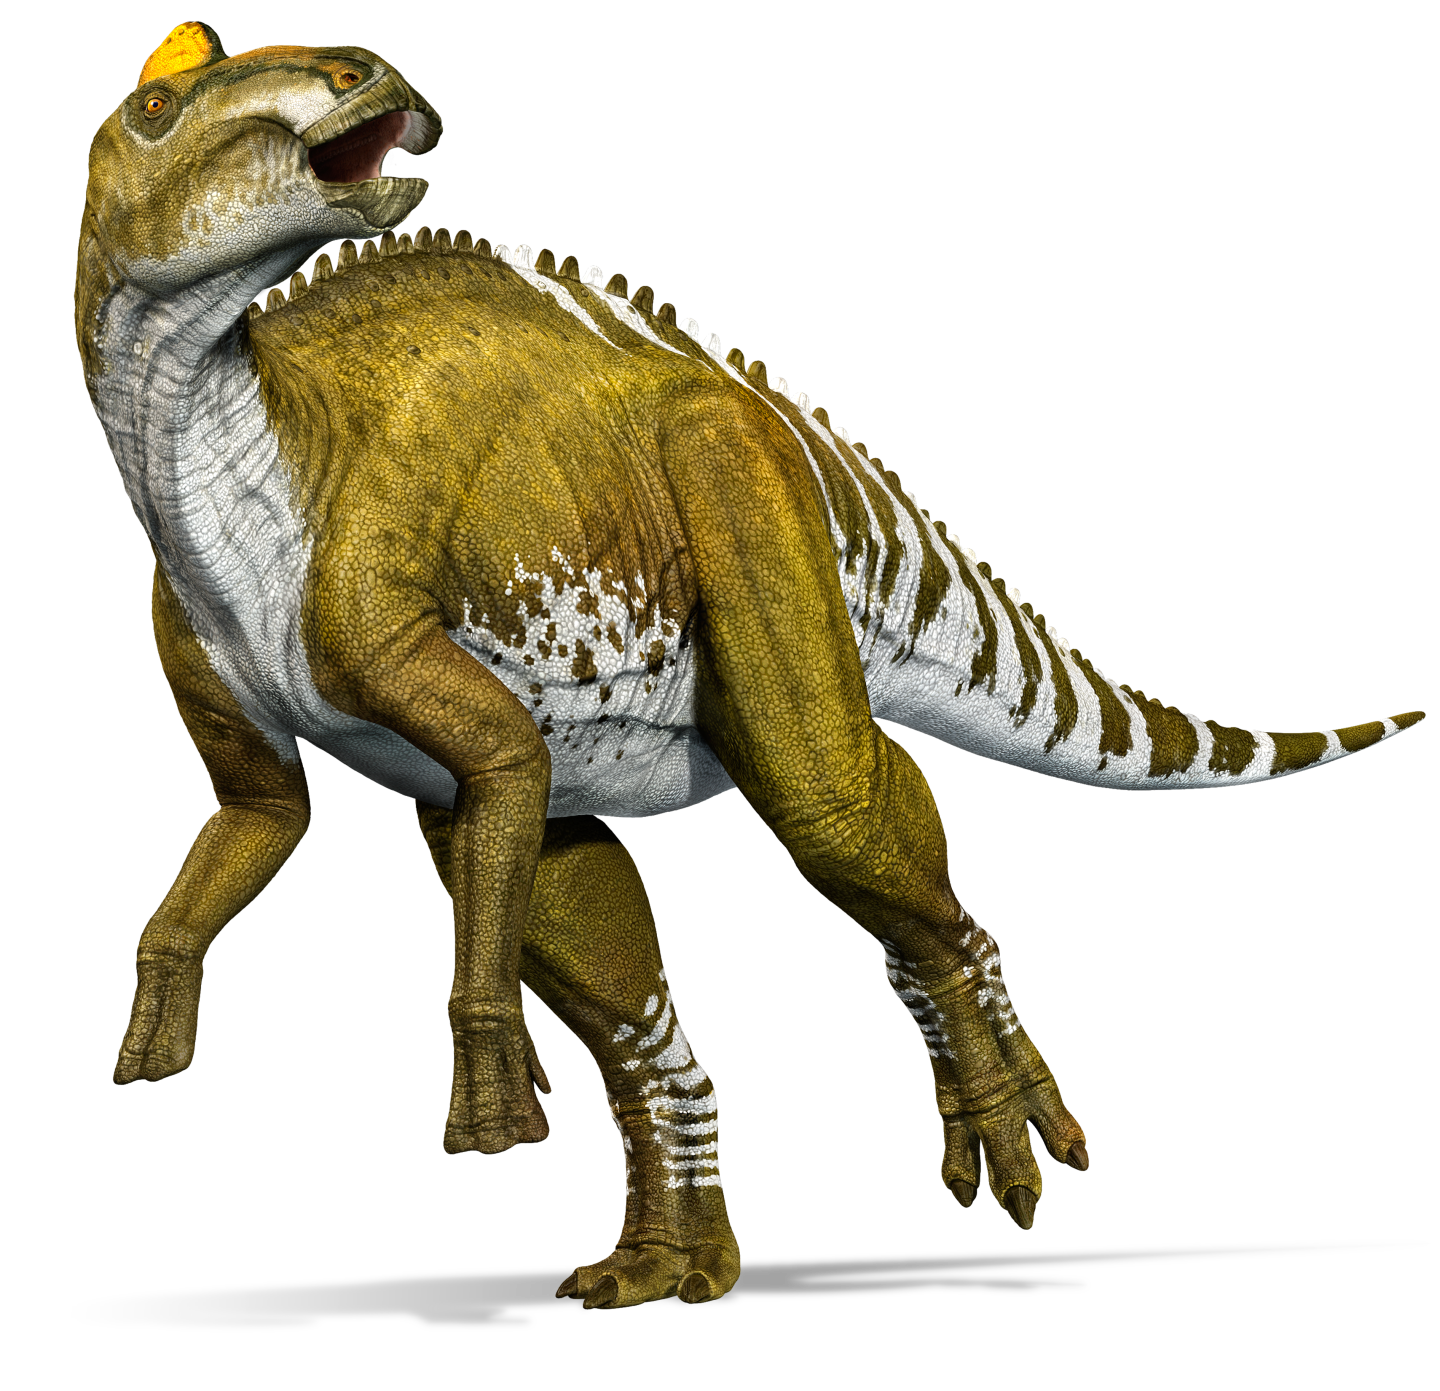 https://vignette.wikia.nocookie.net/dinosaurs/images/4/48/Edmontosaurus_whole_kwwswf.png/revision/latest?cb=20150131022450